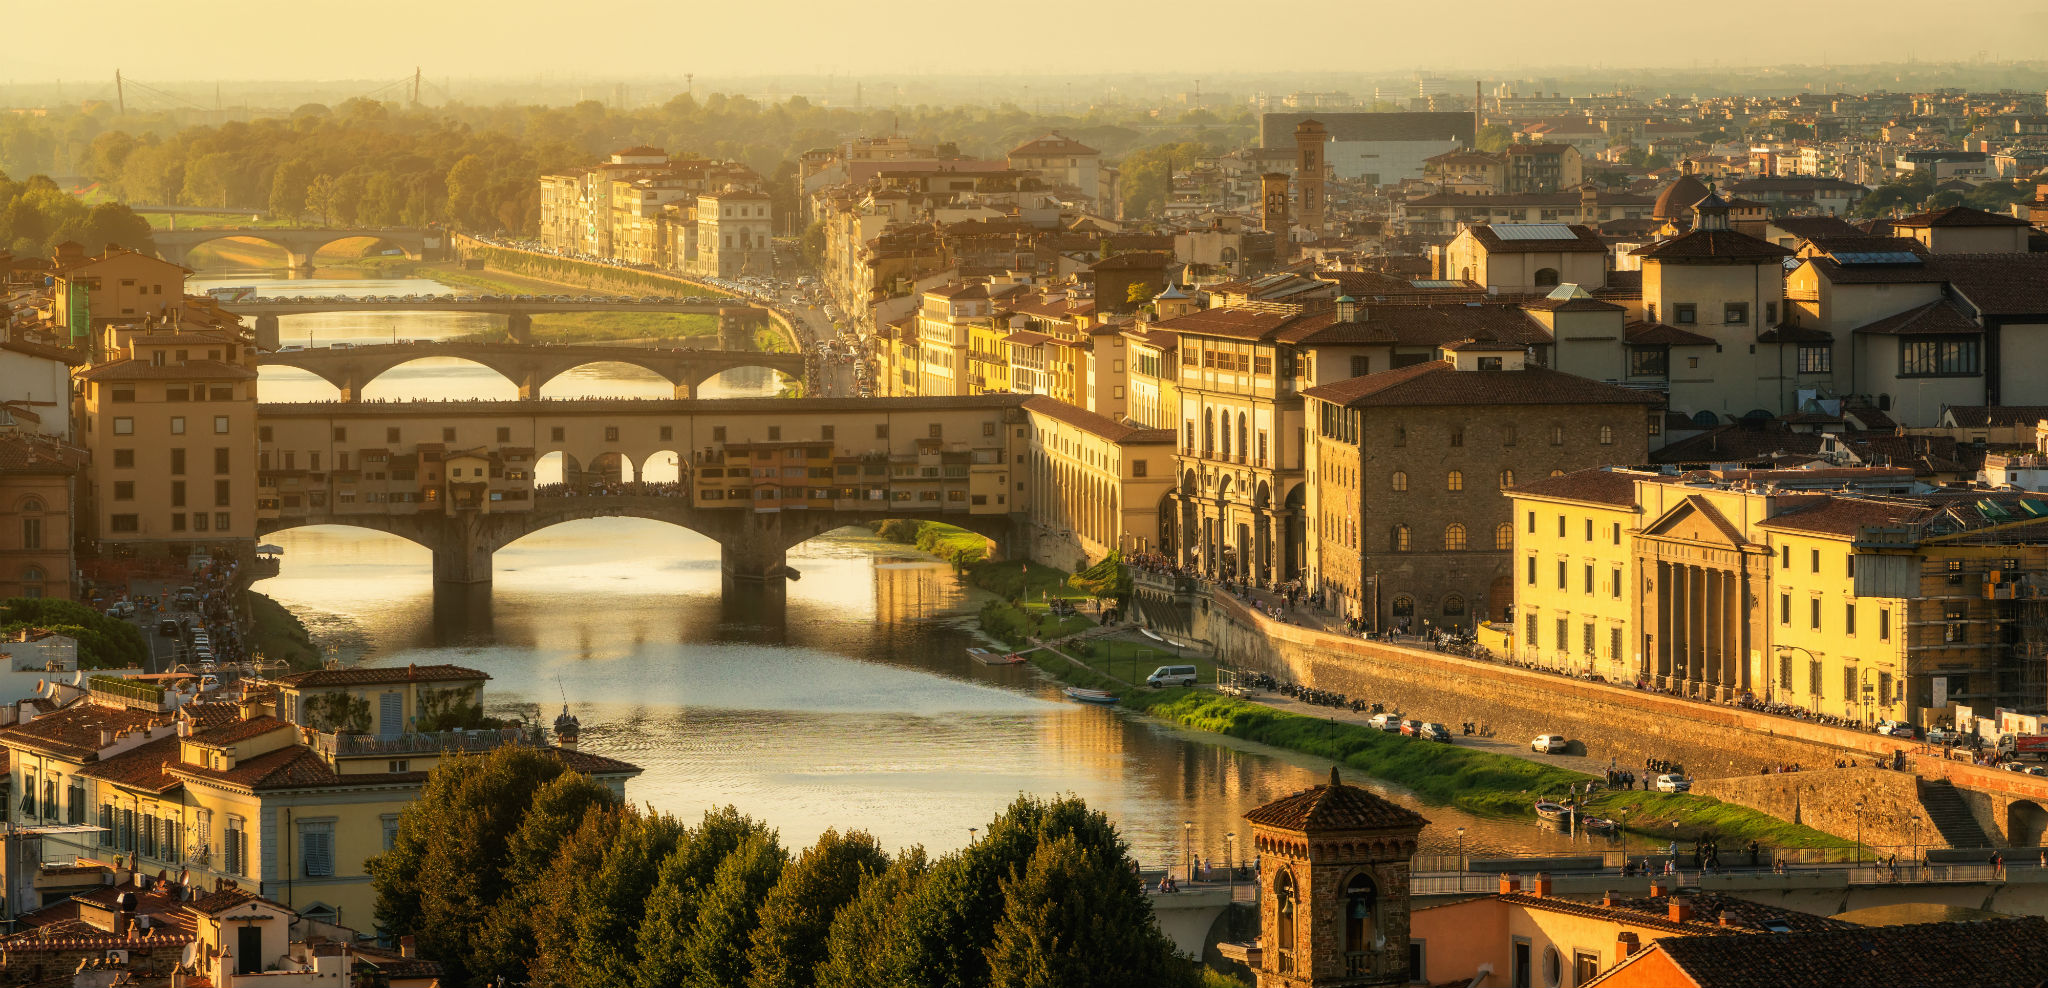 Ponte_Vecchio_Arno_River_in_Florence_Italy_evening.jpg